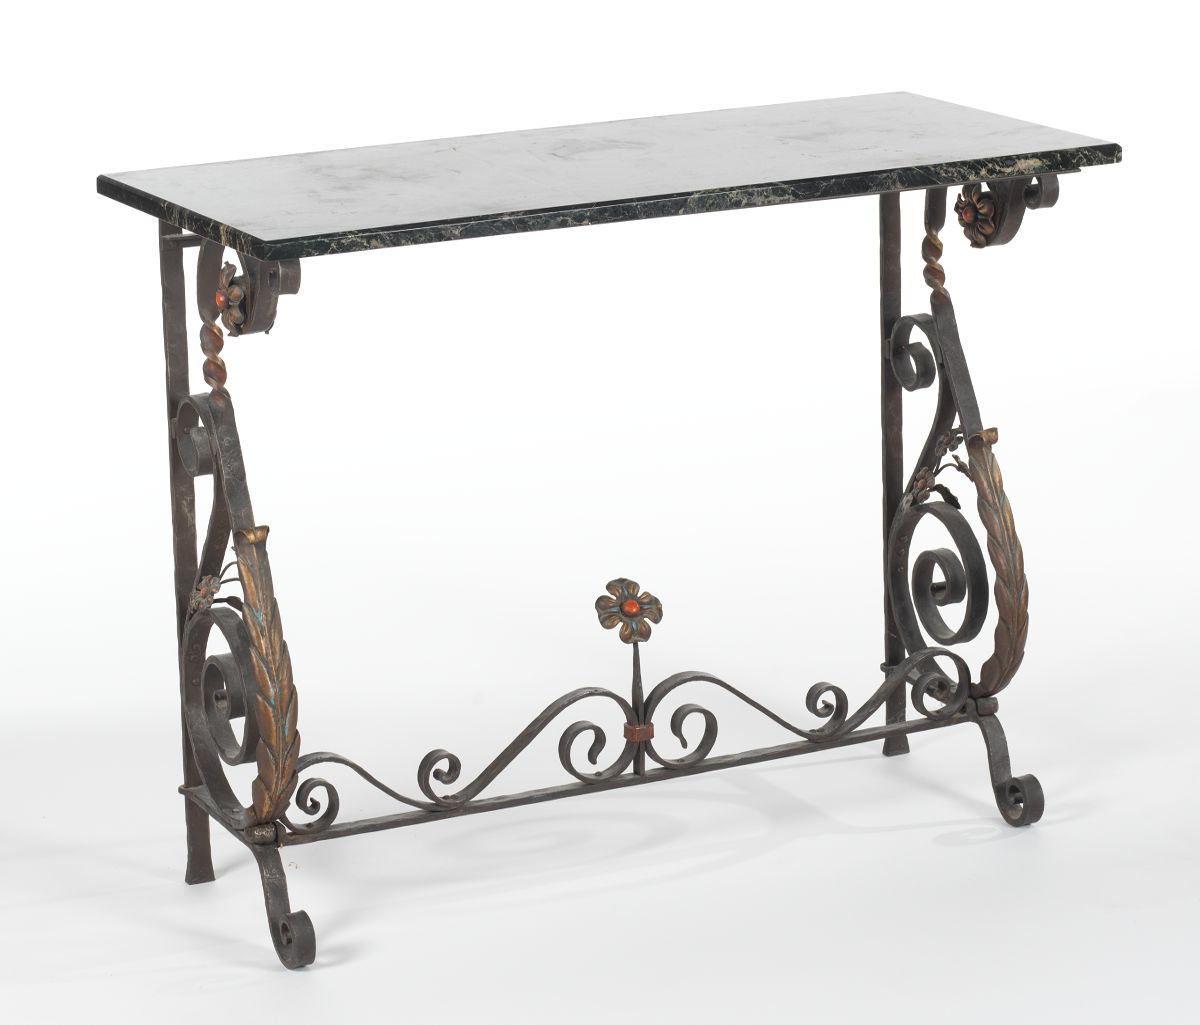 A Wrought Iron Marble Top Console Table Sold 345